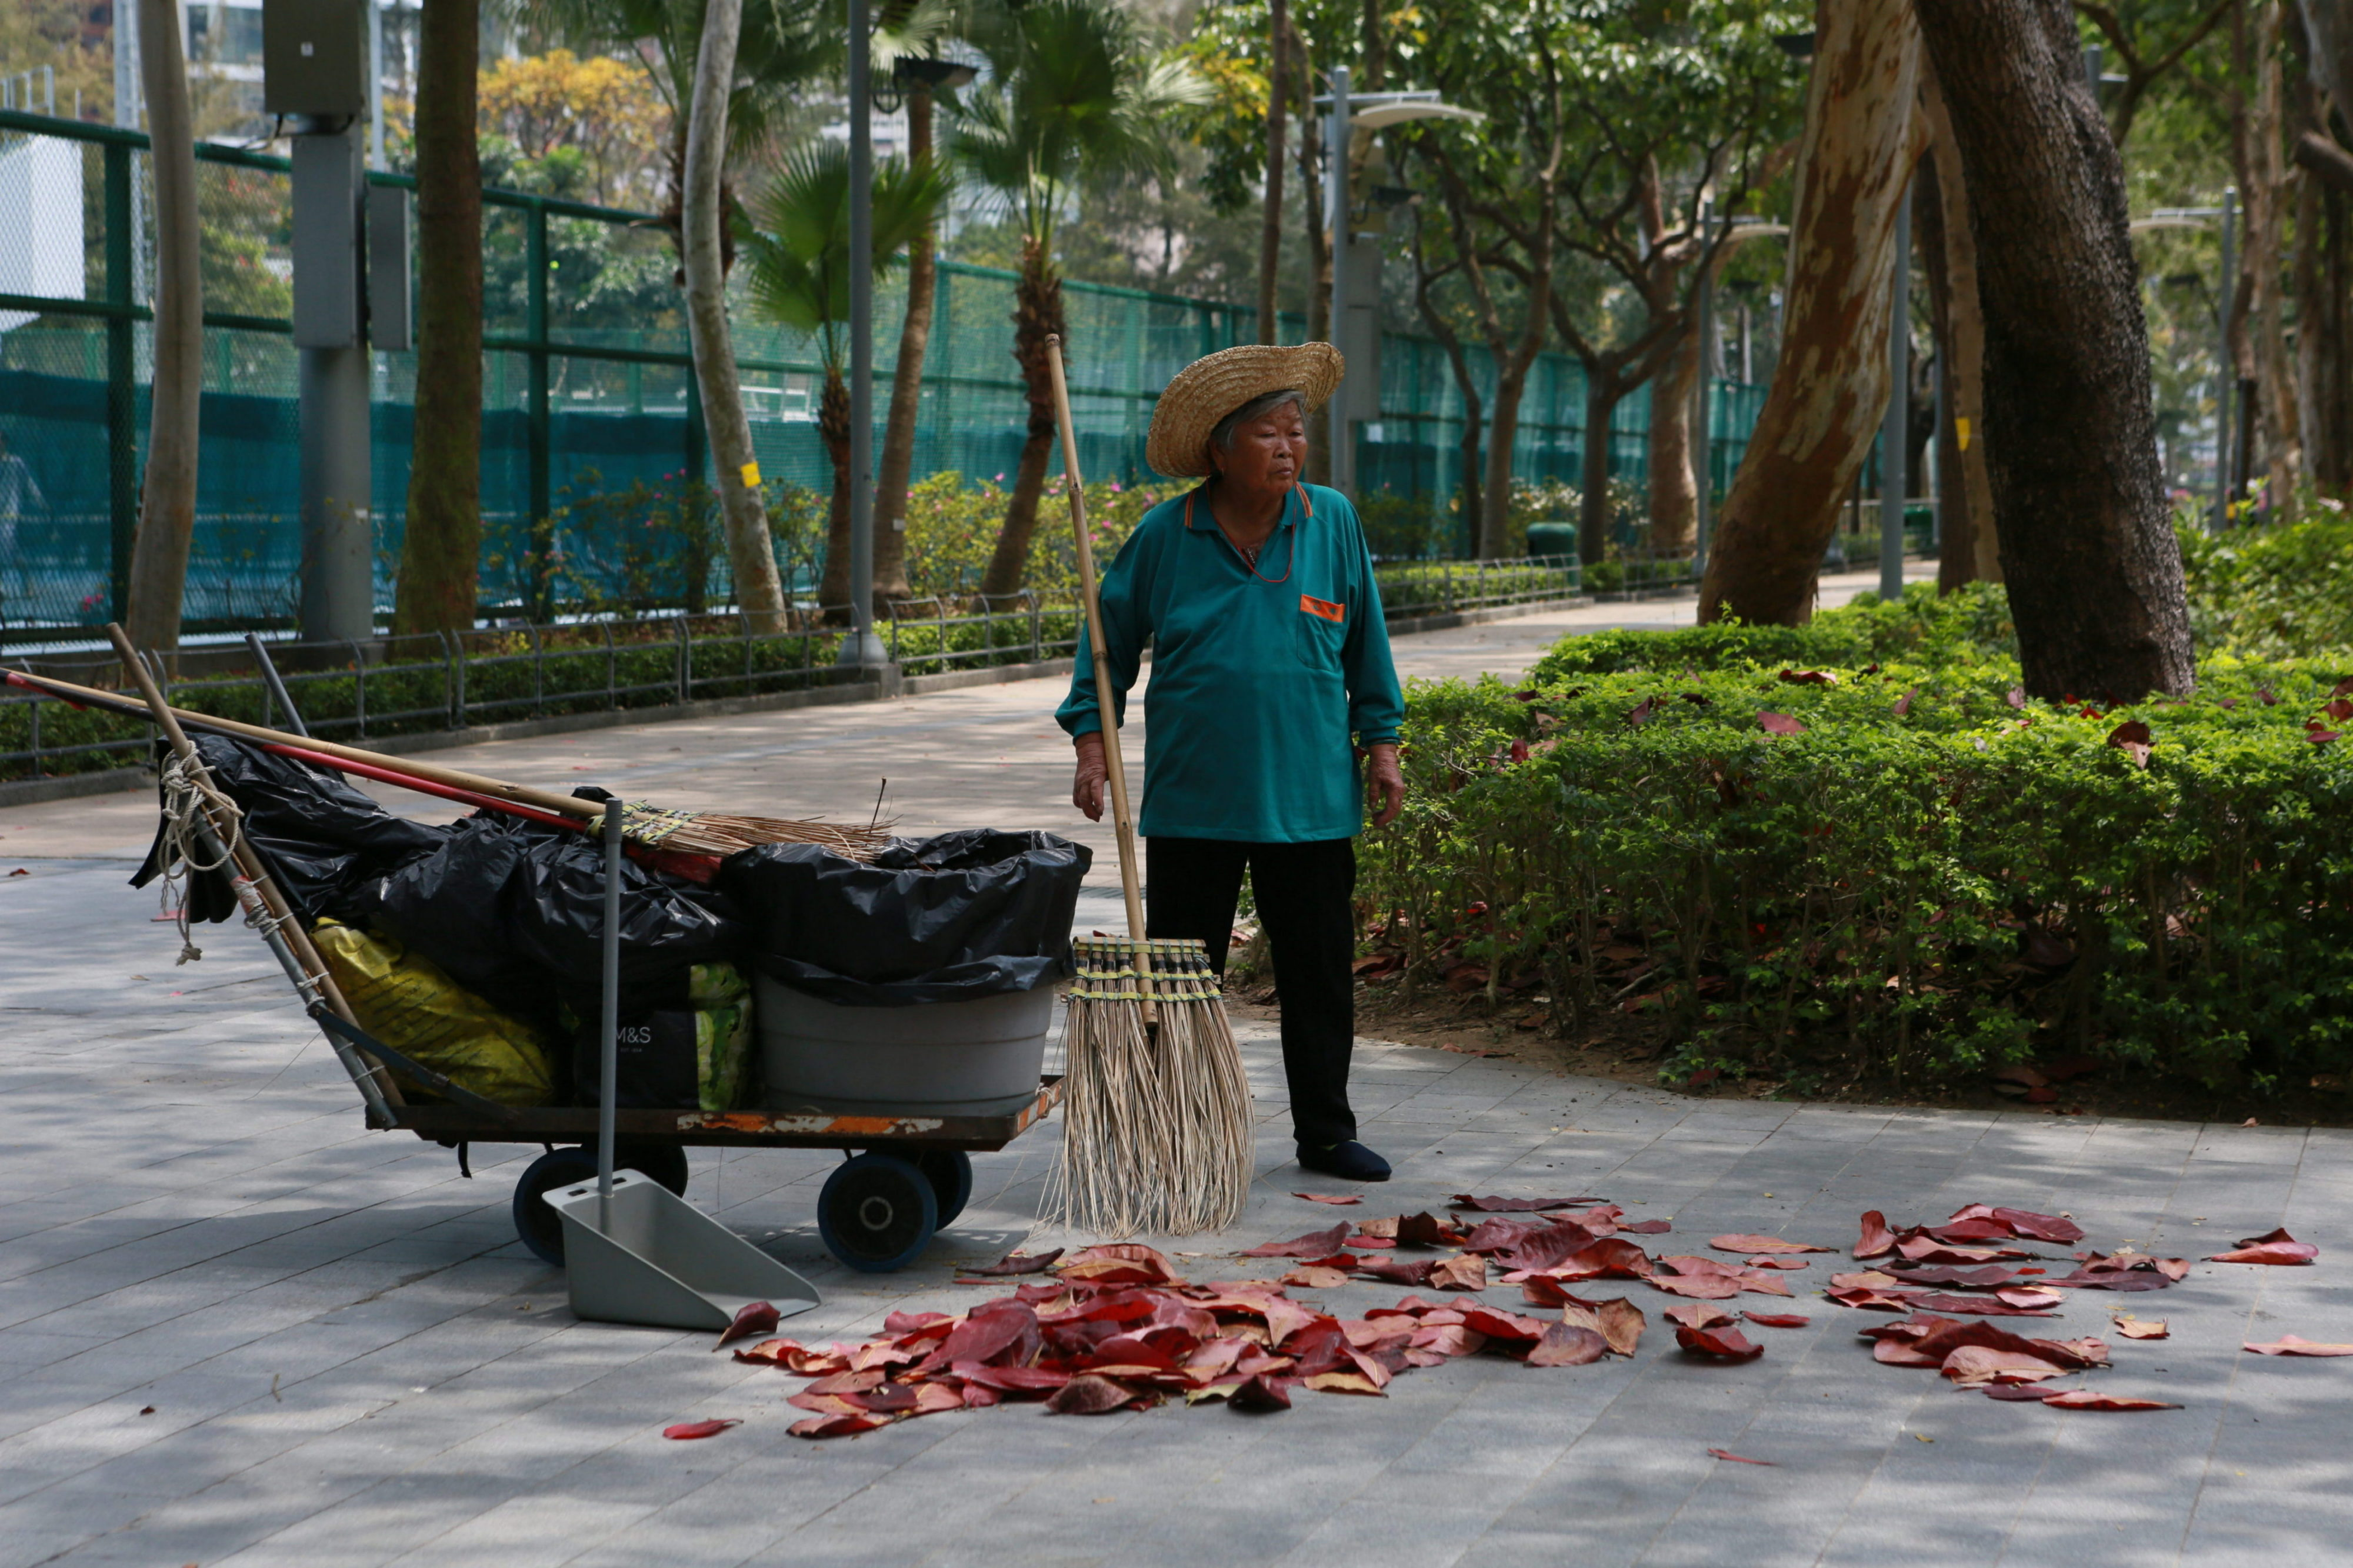 A woman clears up leaves in a park in Hong Kong. © Paul Jay, 2017.